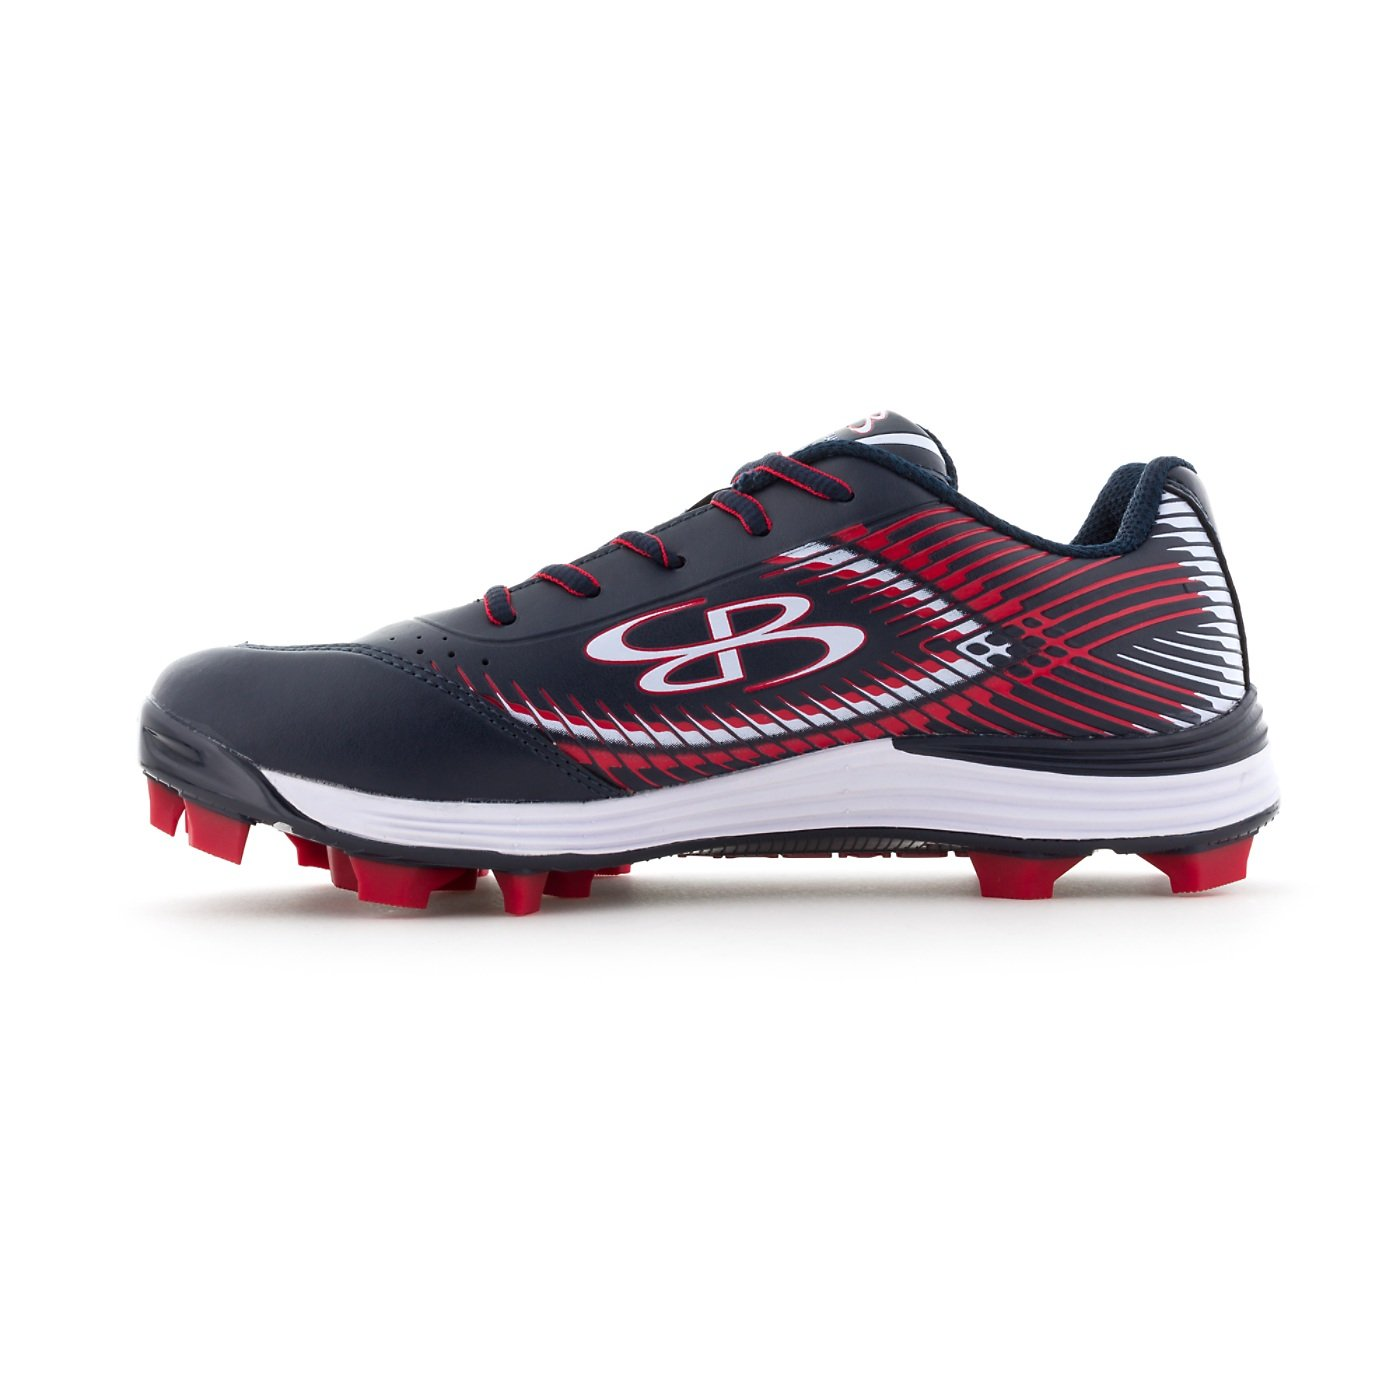 88003d4c1 Boombah Women s Frenzy Molded Cleats - 13 Color Options - Multiple Sizes  larger image